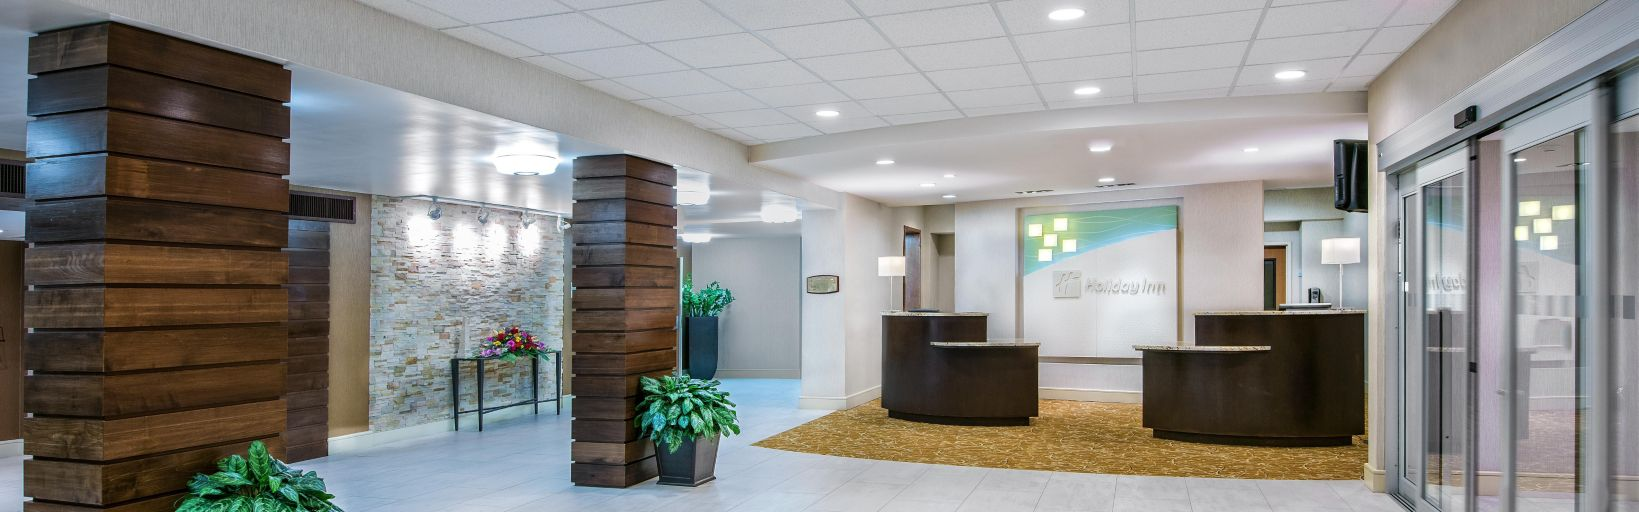 Holiday Inn Dallas DFW Airport Area Hotel in Bedford TX